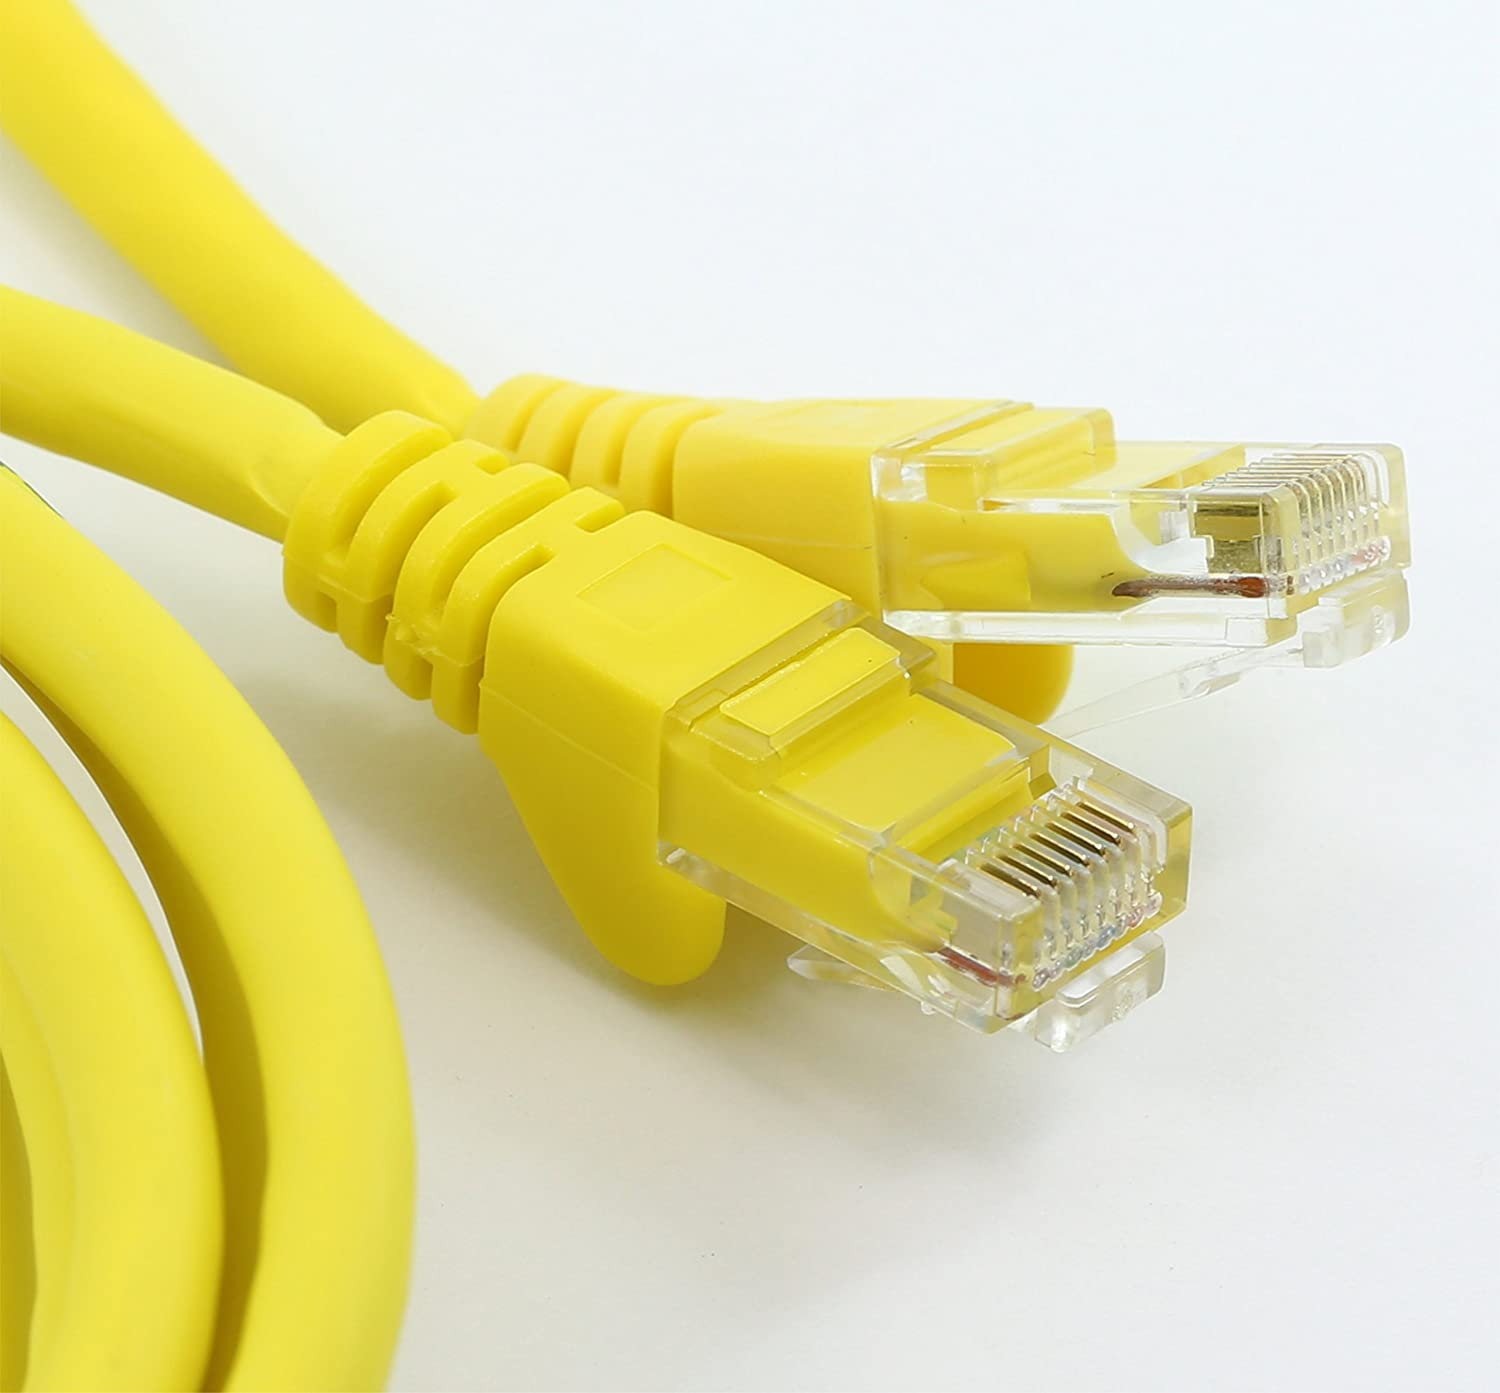 98ft, White rhinocables CAT6 Ethernet Cable Fast Speed RJ45 Patch Network Gigabit Internet LAN Ethernet Lead